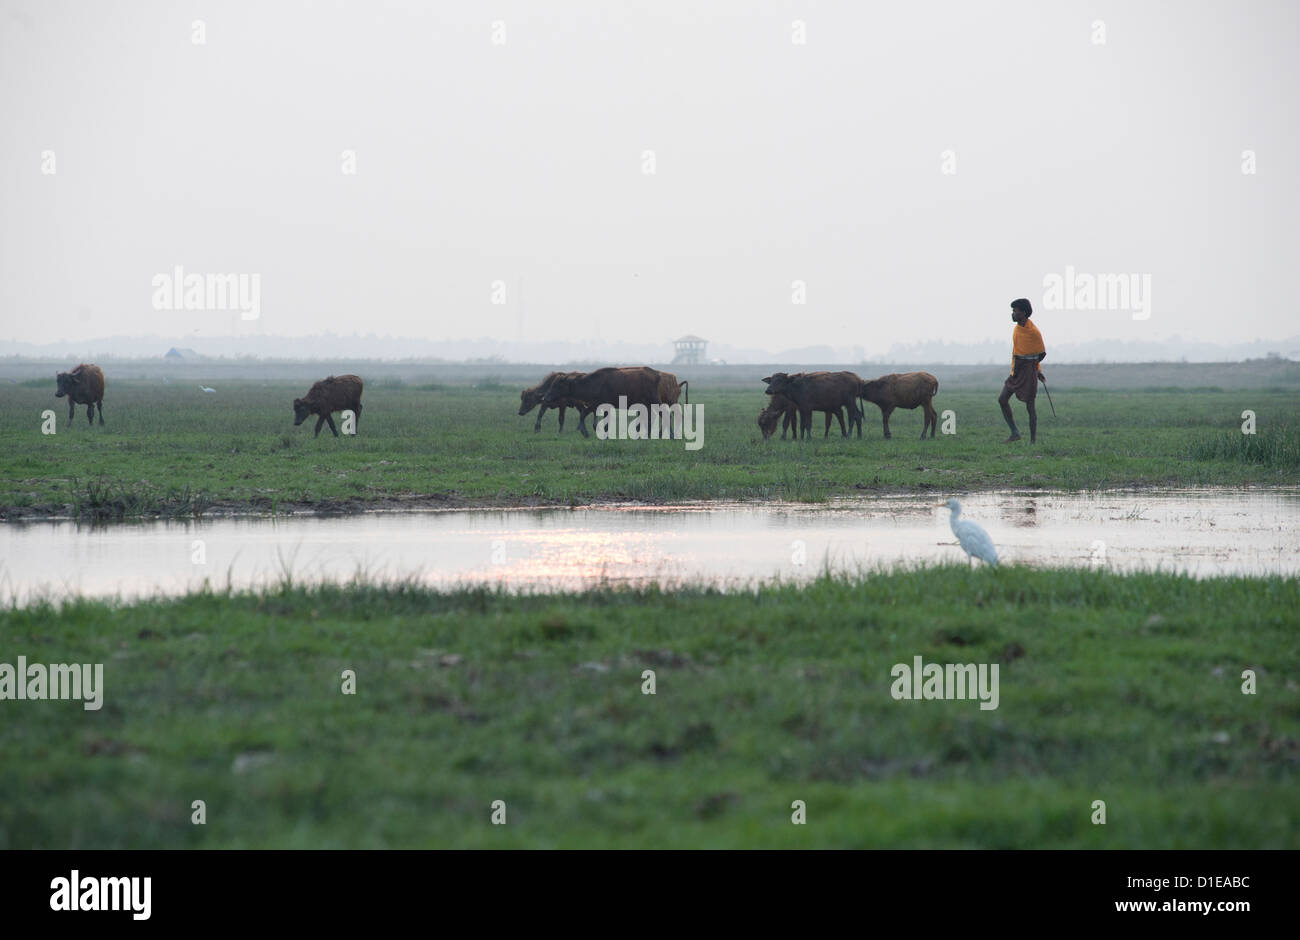 Cowherd bringing cattle in at dusk, white ibis in the foreground, wetlands around Chilika Lake, Orissa, India, Asia - Stock Image